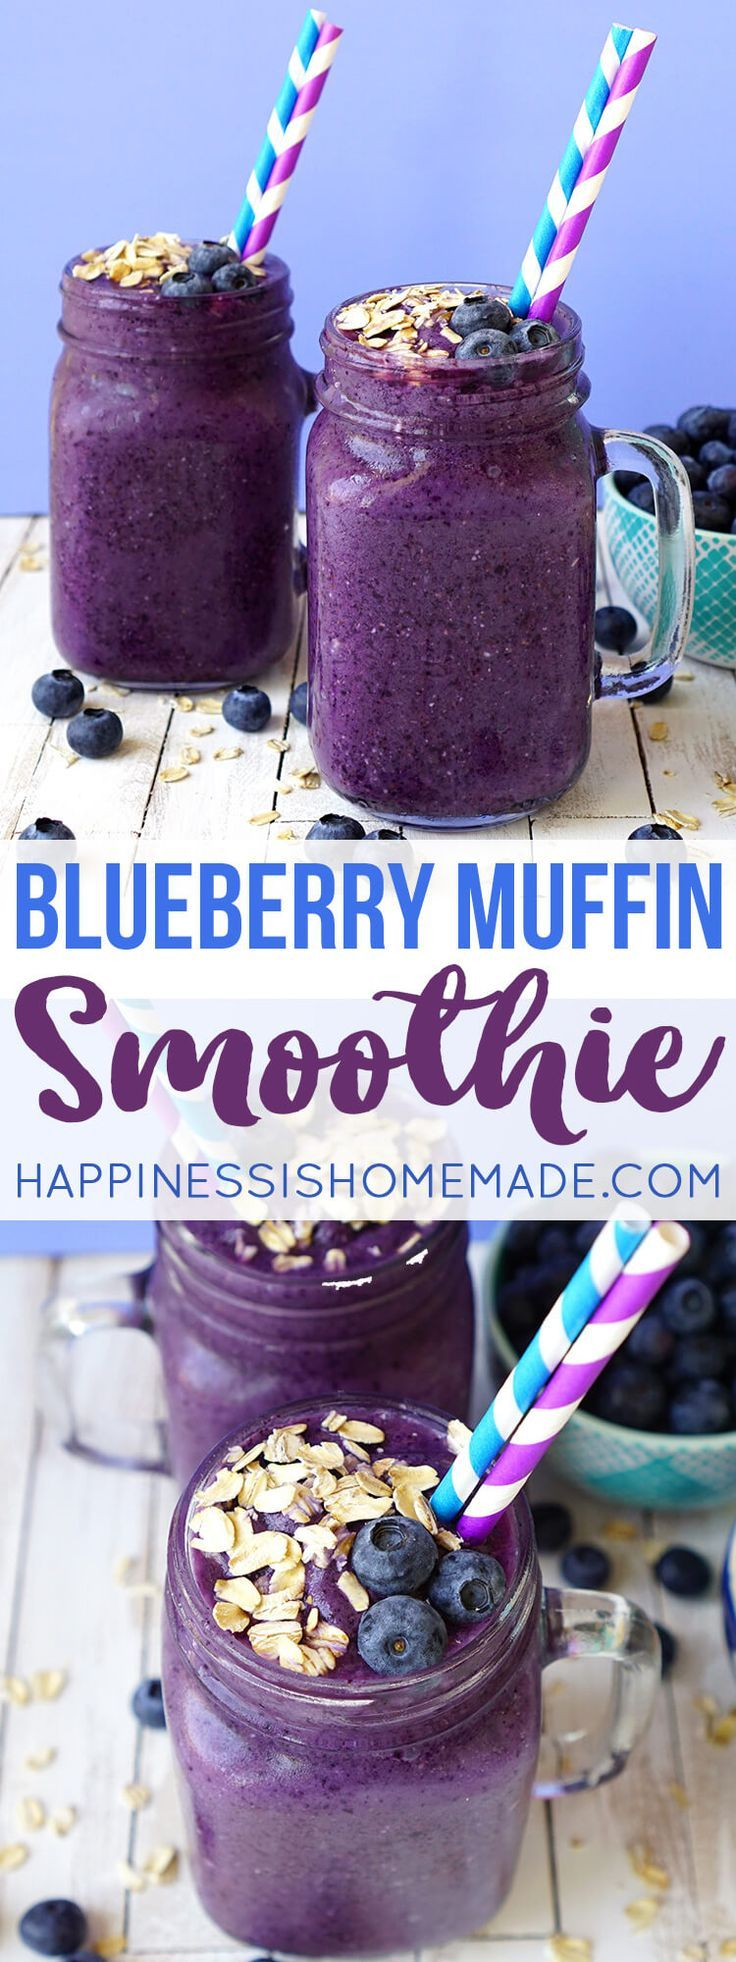 This delicious blueberry muffin smoothie is the perfect way to start your day! A healthy on-the-go breakfast that tastes just like your favorite bakery treat!  via @hiHomemadeBlog